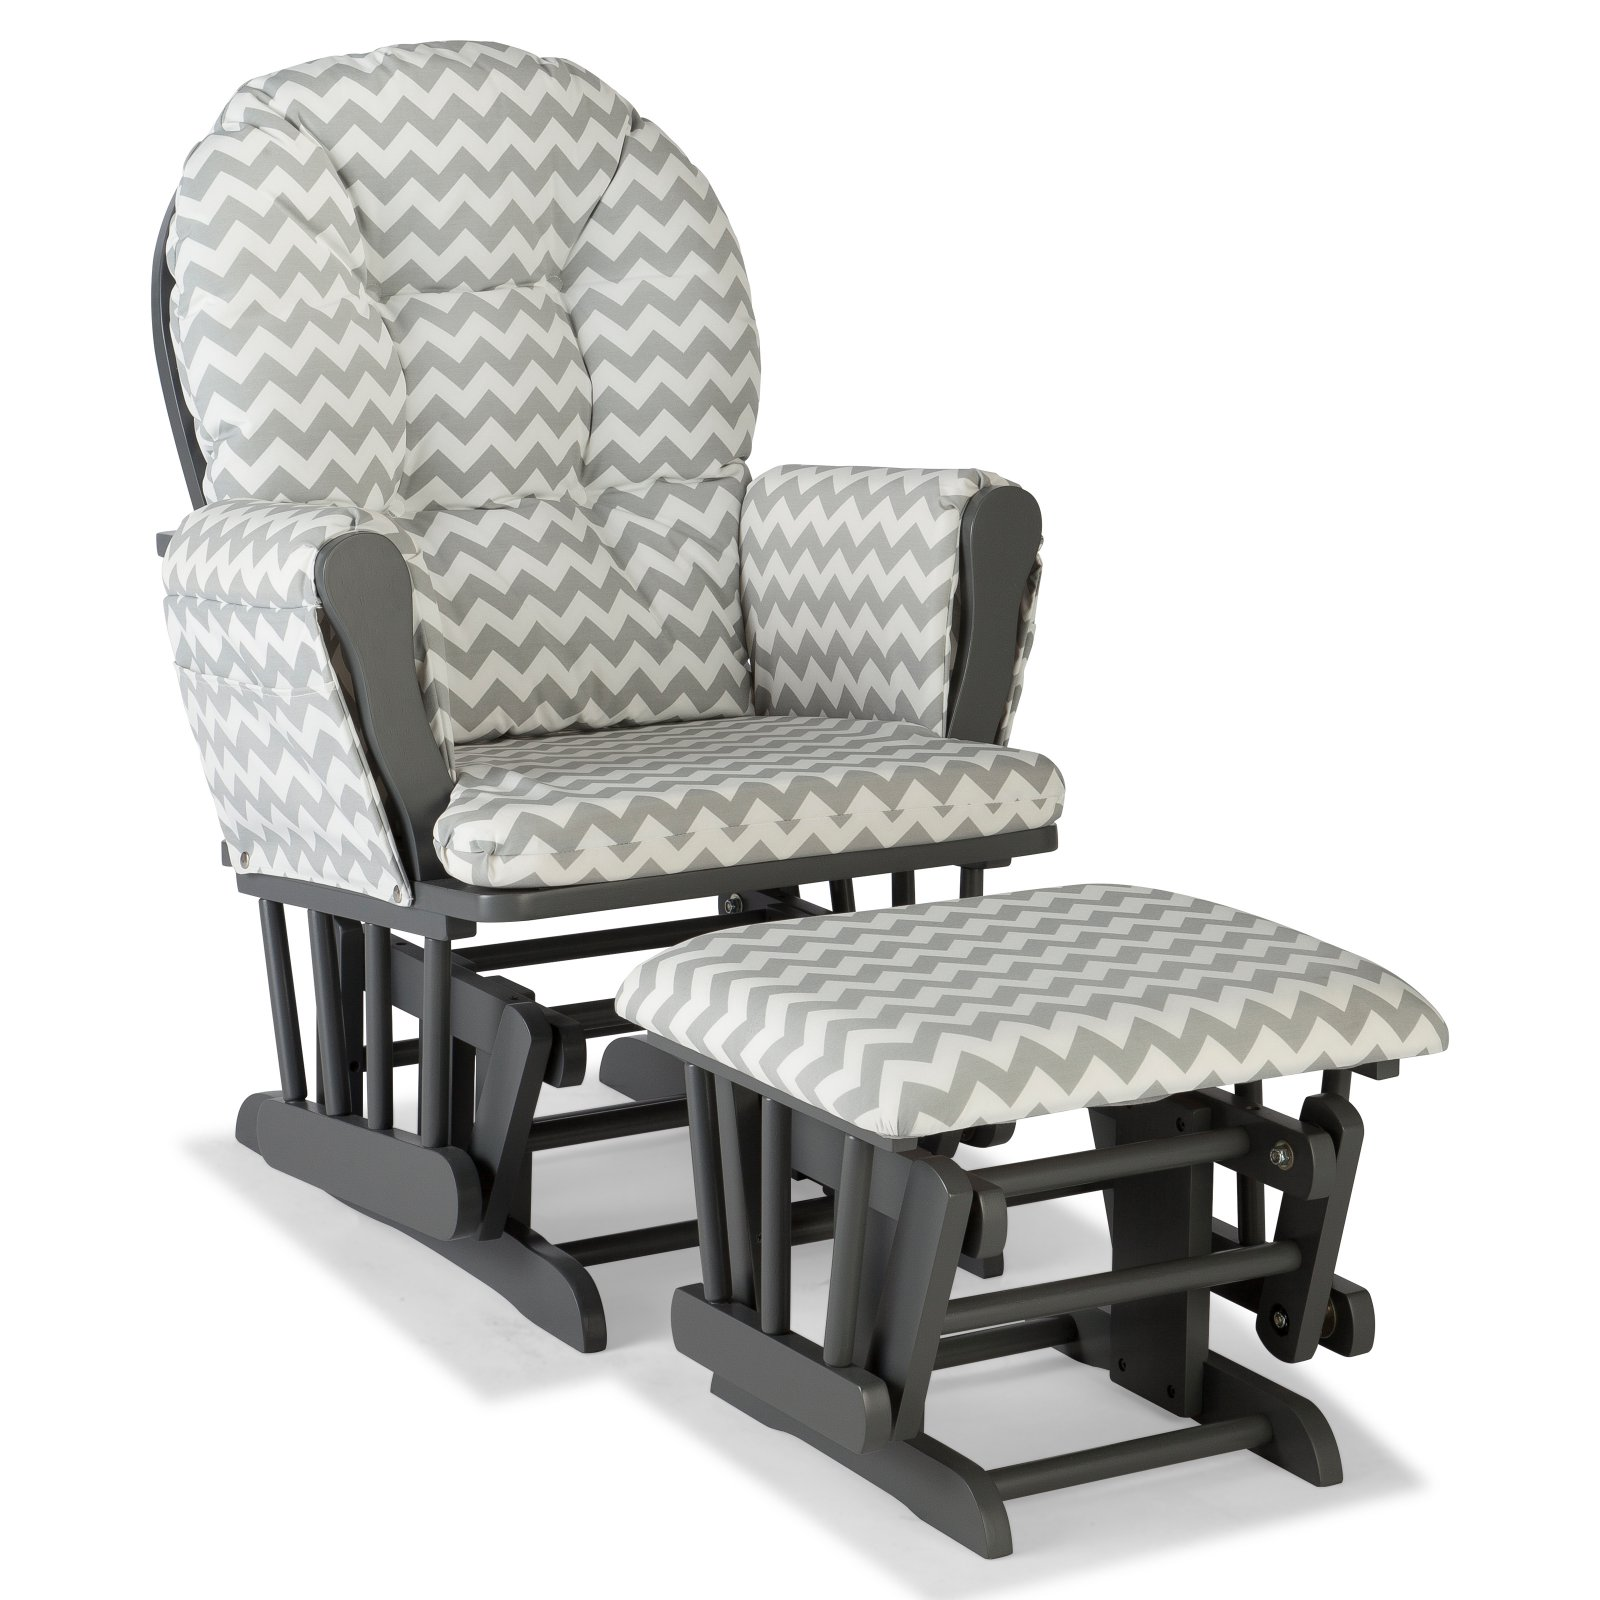 Storkcraft Chevron Hoop Glider and Ottoman White with Gray Cushions